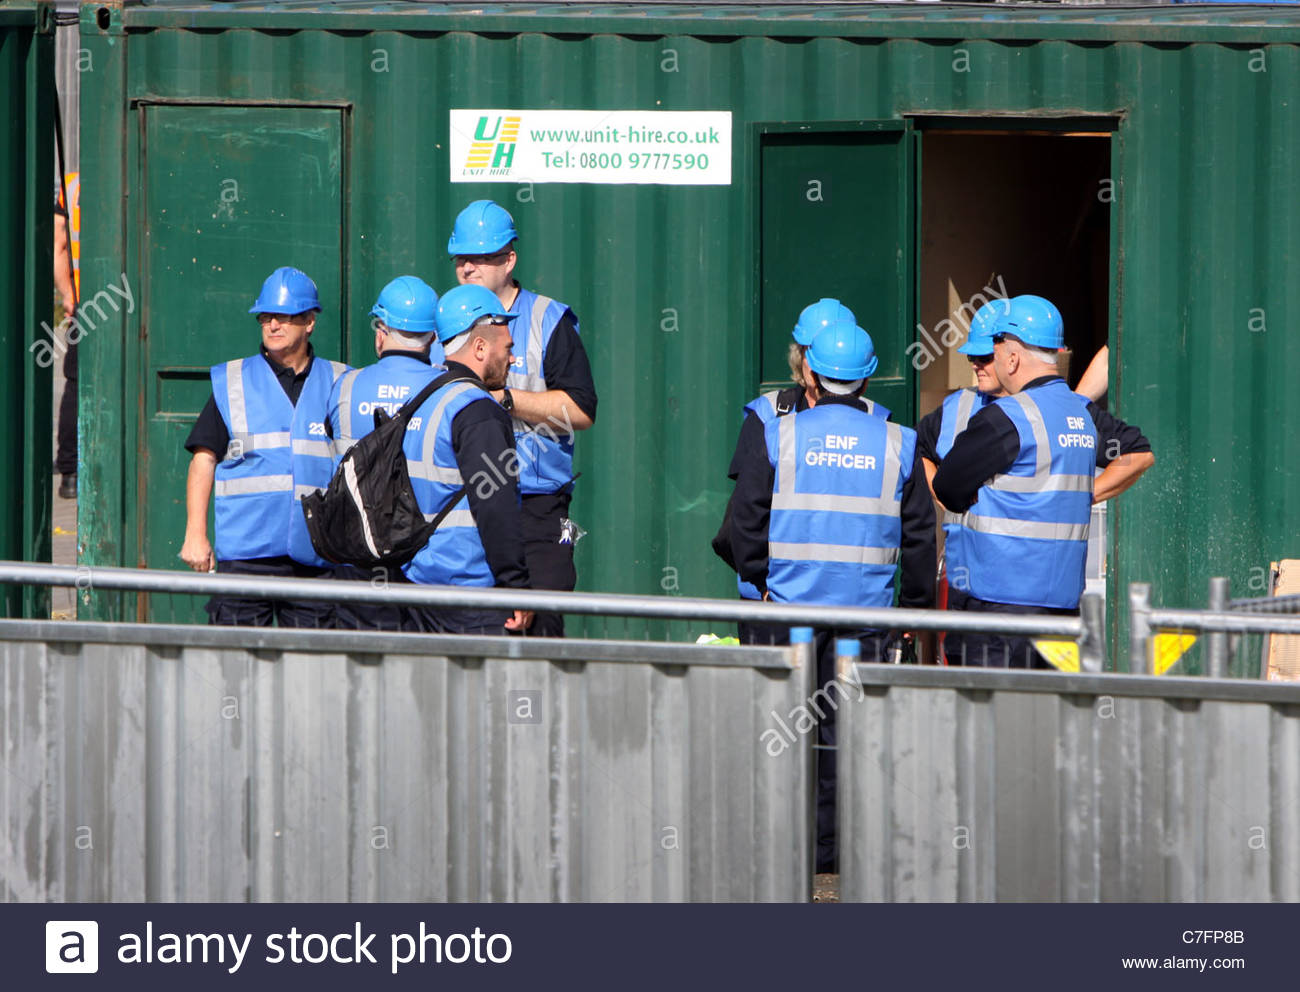 Bailiffs waiting in their compound at Dale Farm travellers site near Basildon Essex - Stock Image